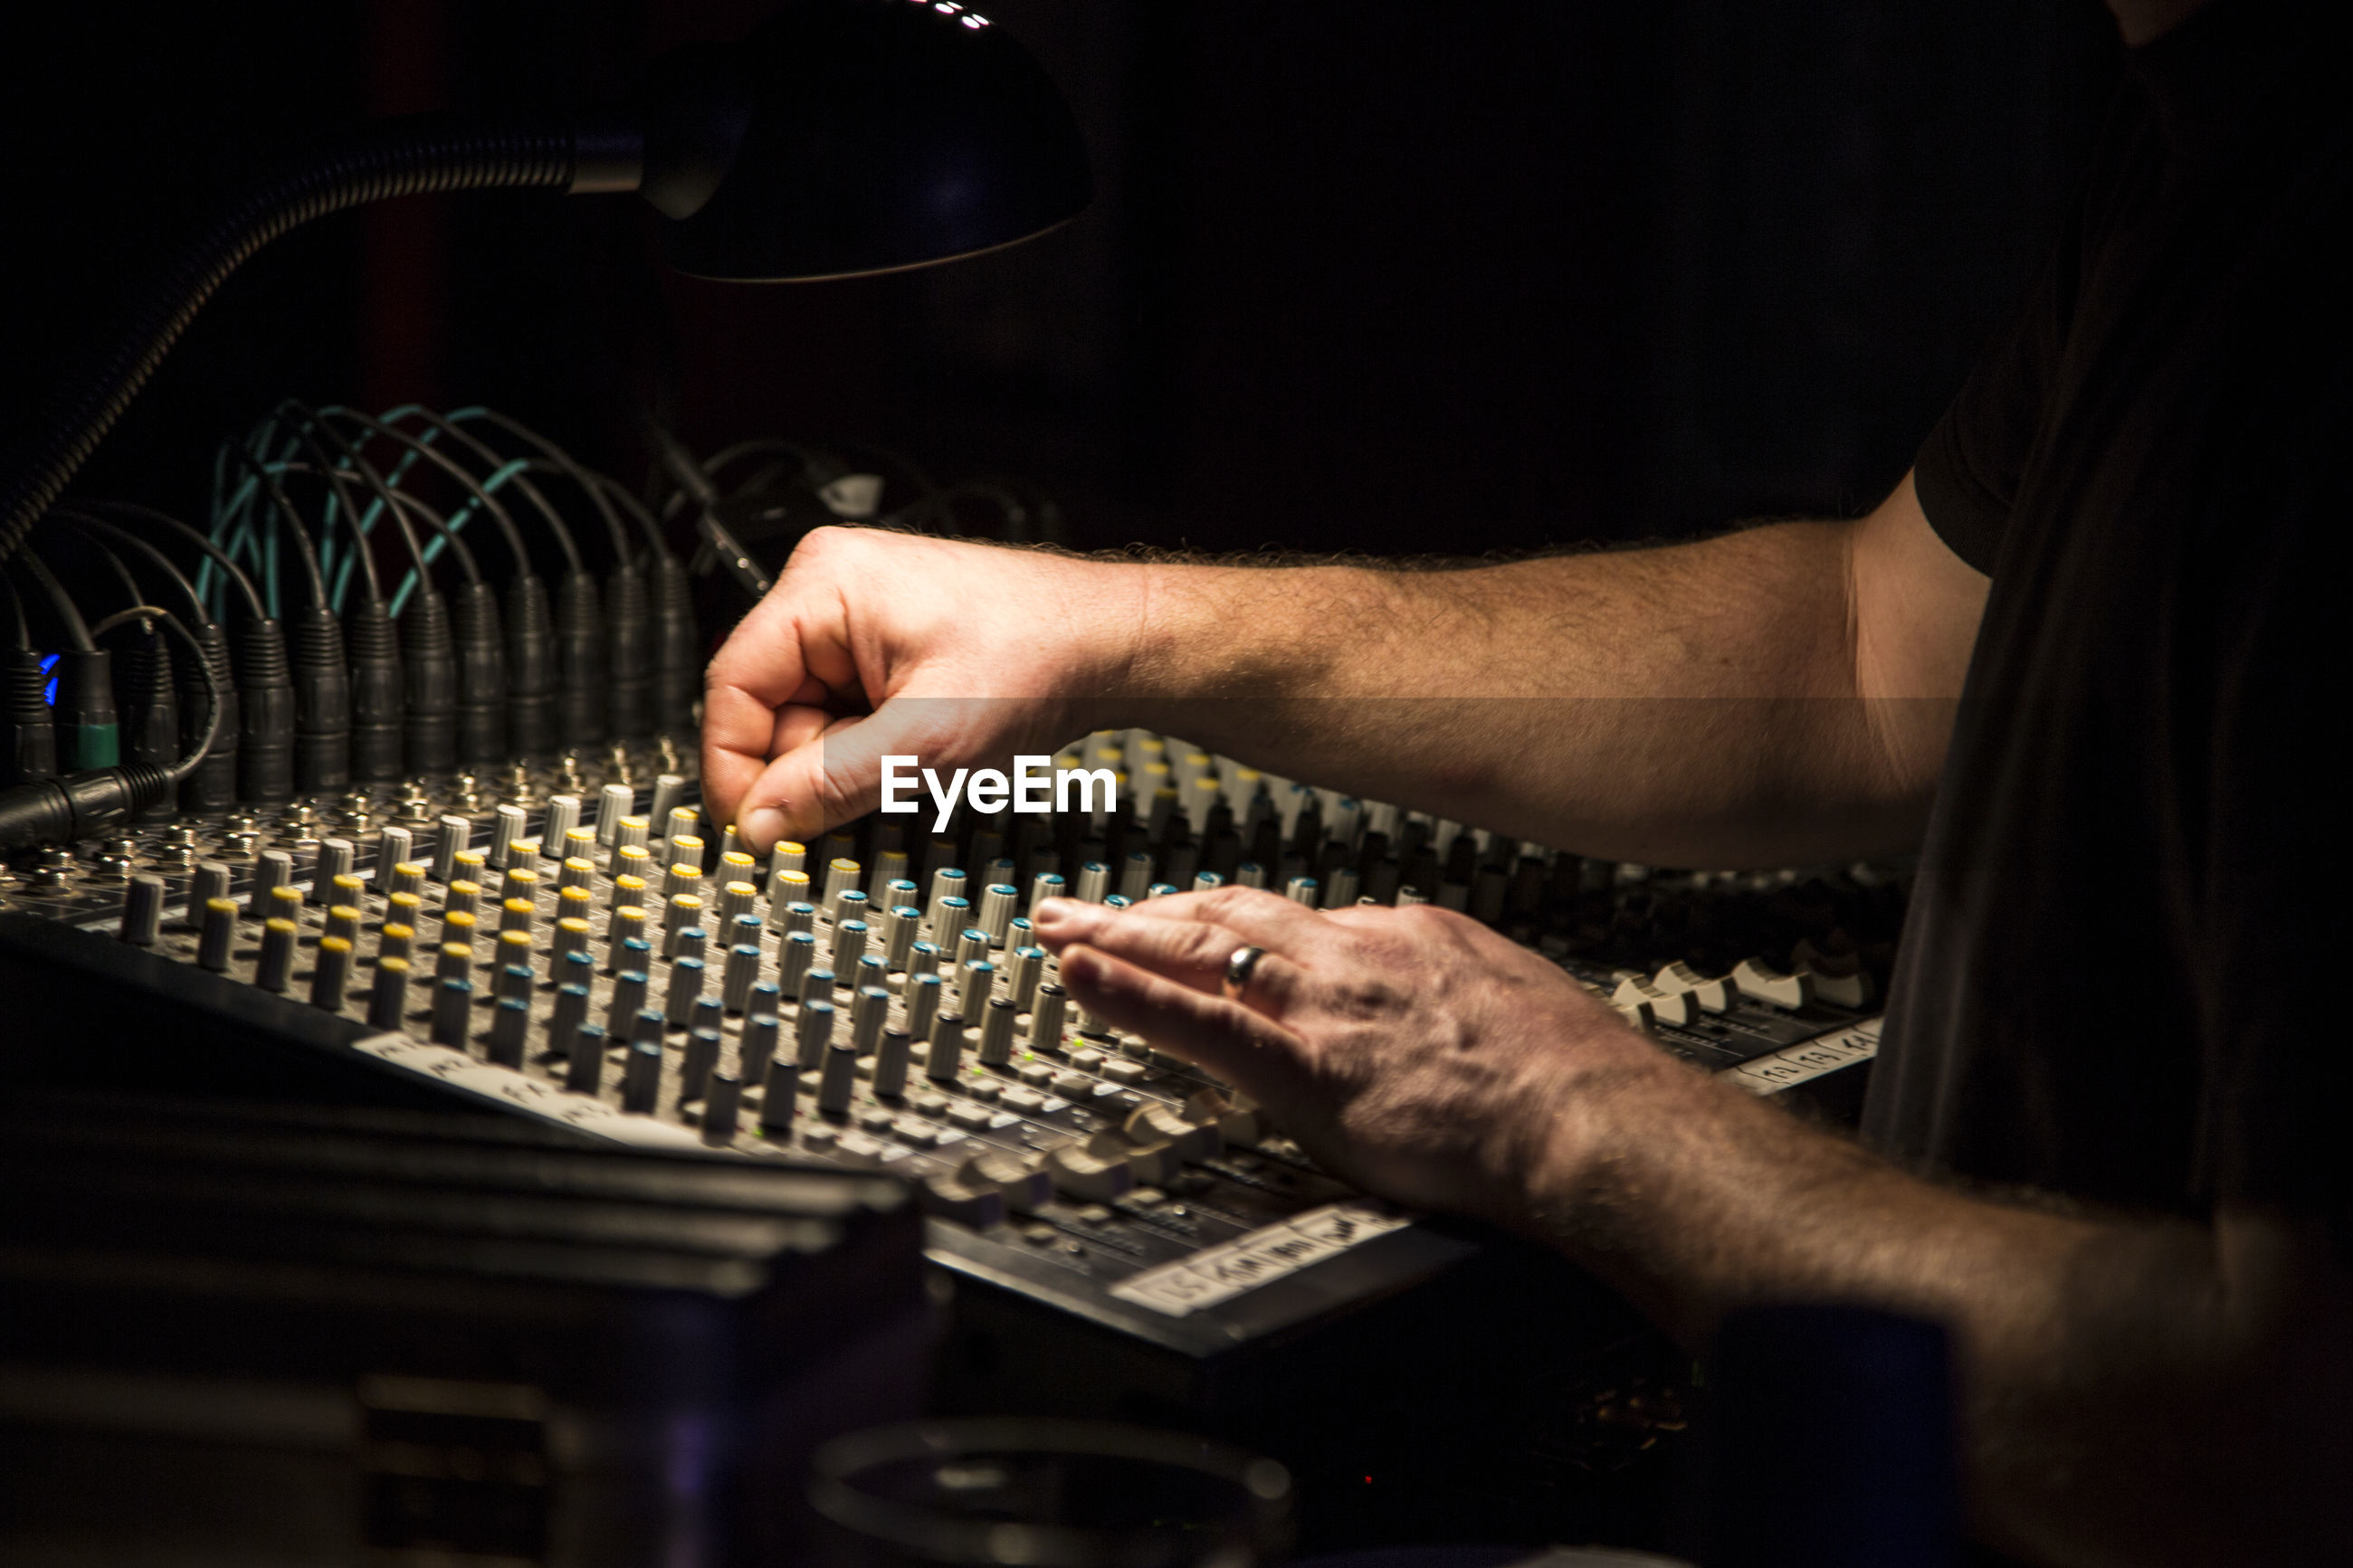 Midsection of man using sound mixer in recording studio